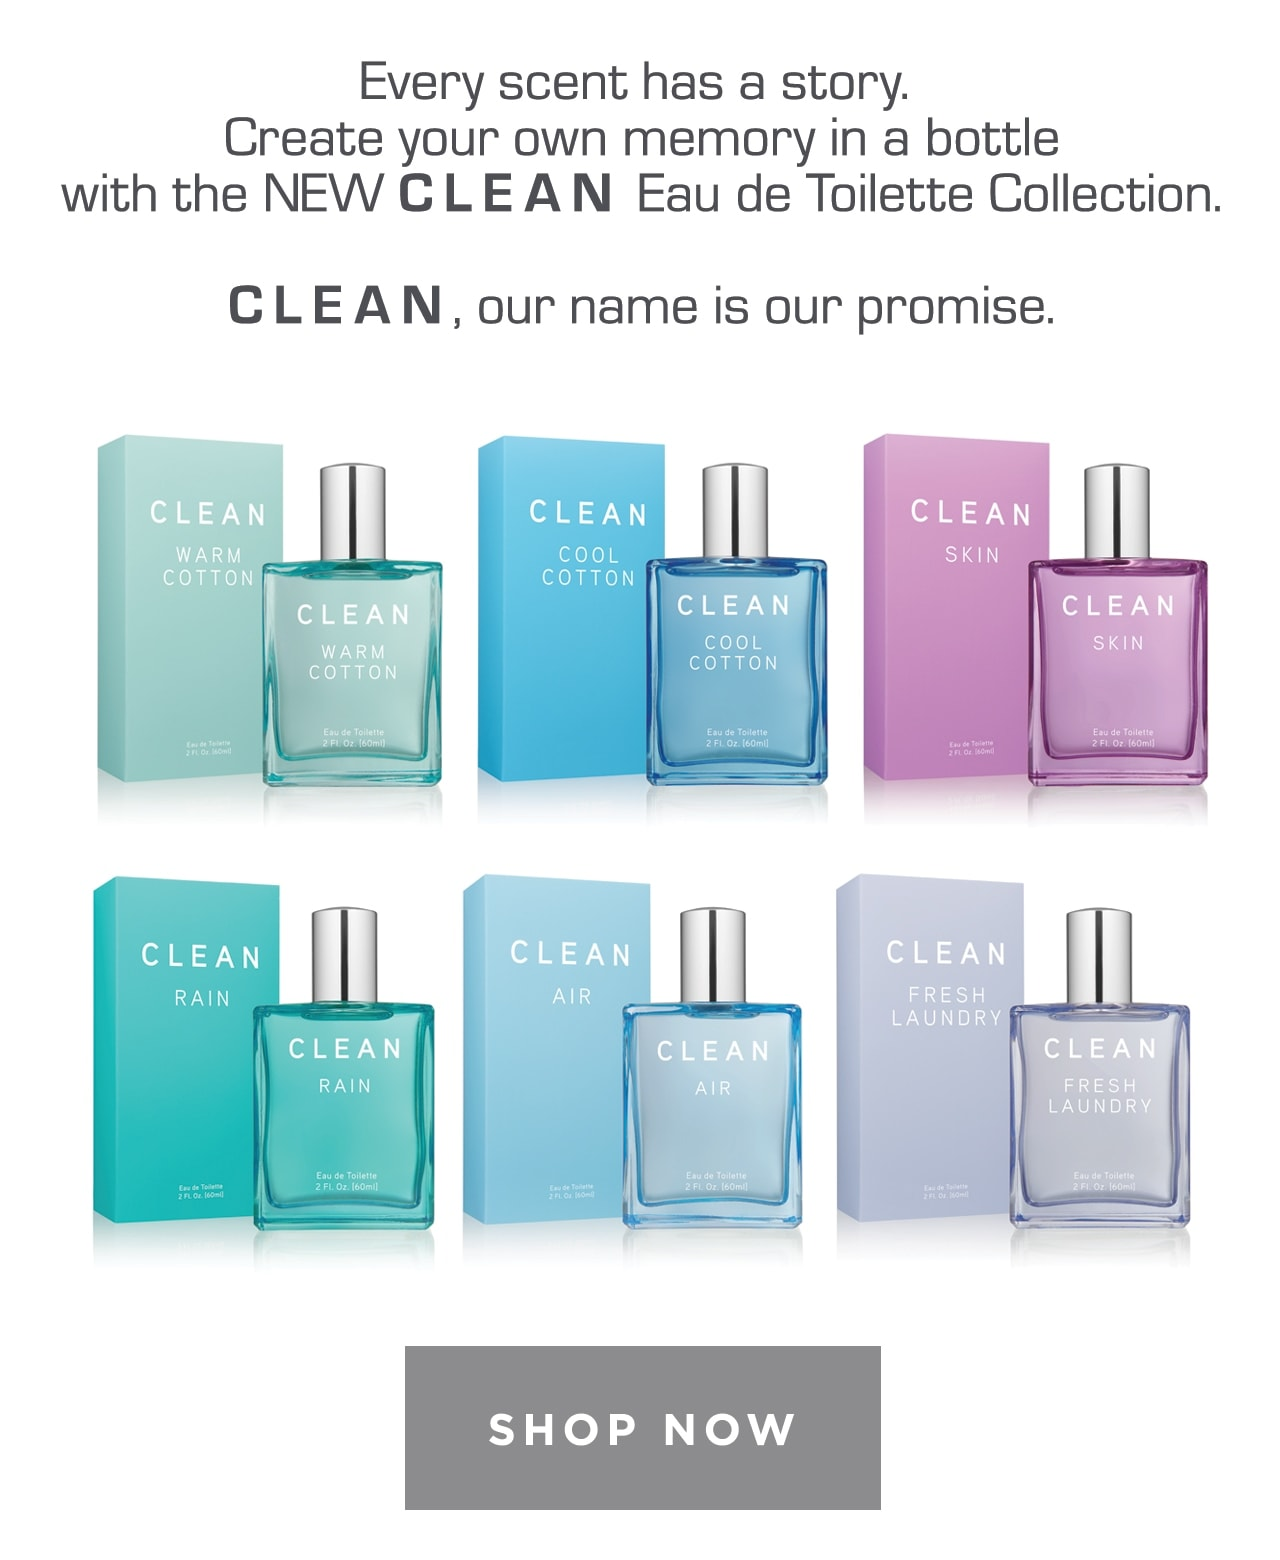 Clean Eau de Toilette Collection